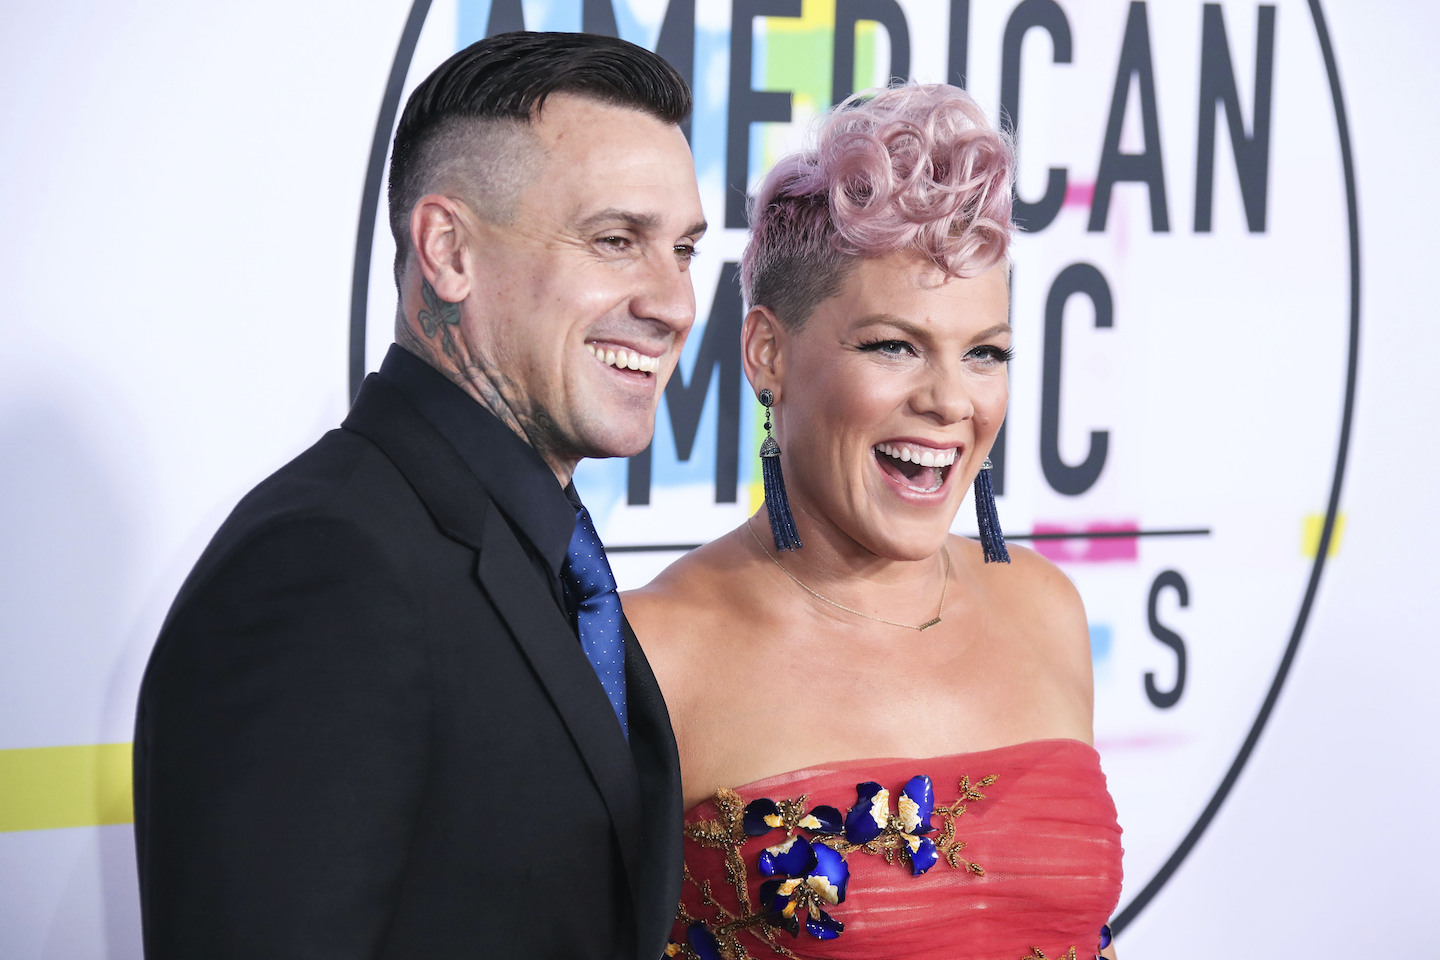 Pink's husband Carey Hart shares video of 9-year-old daughter shooting gun